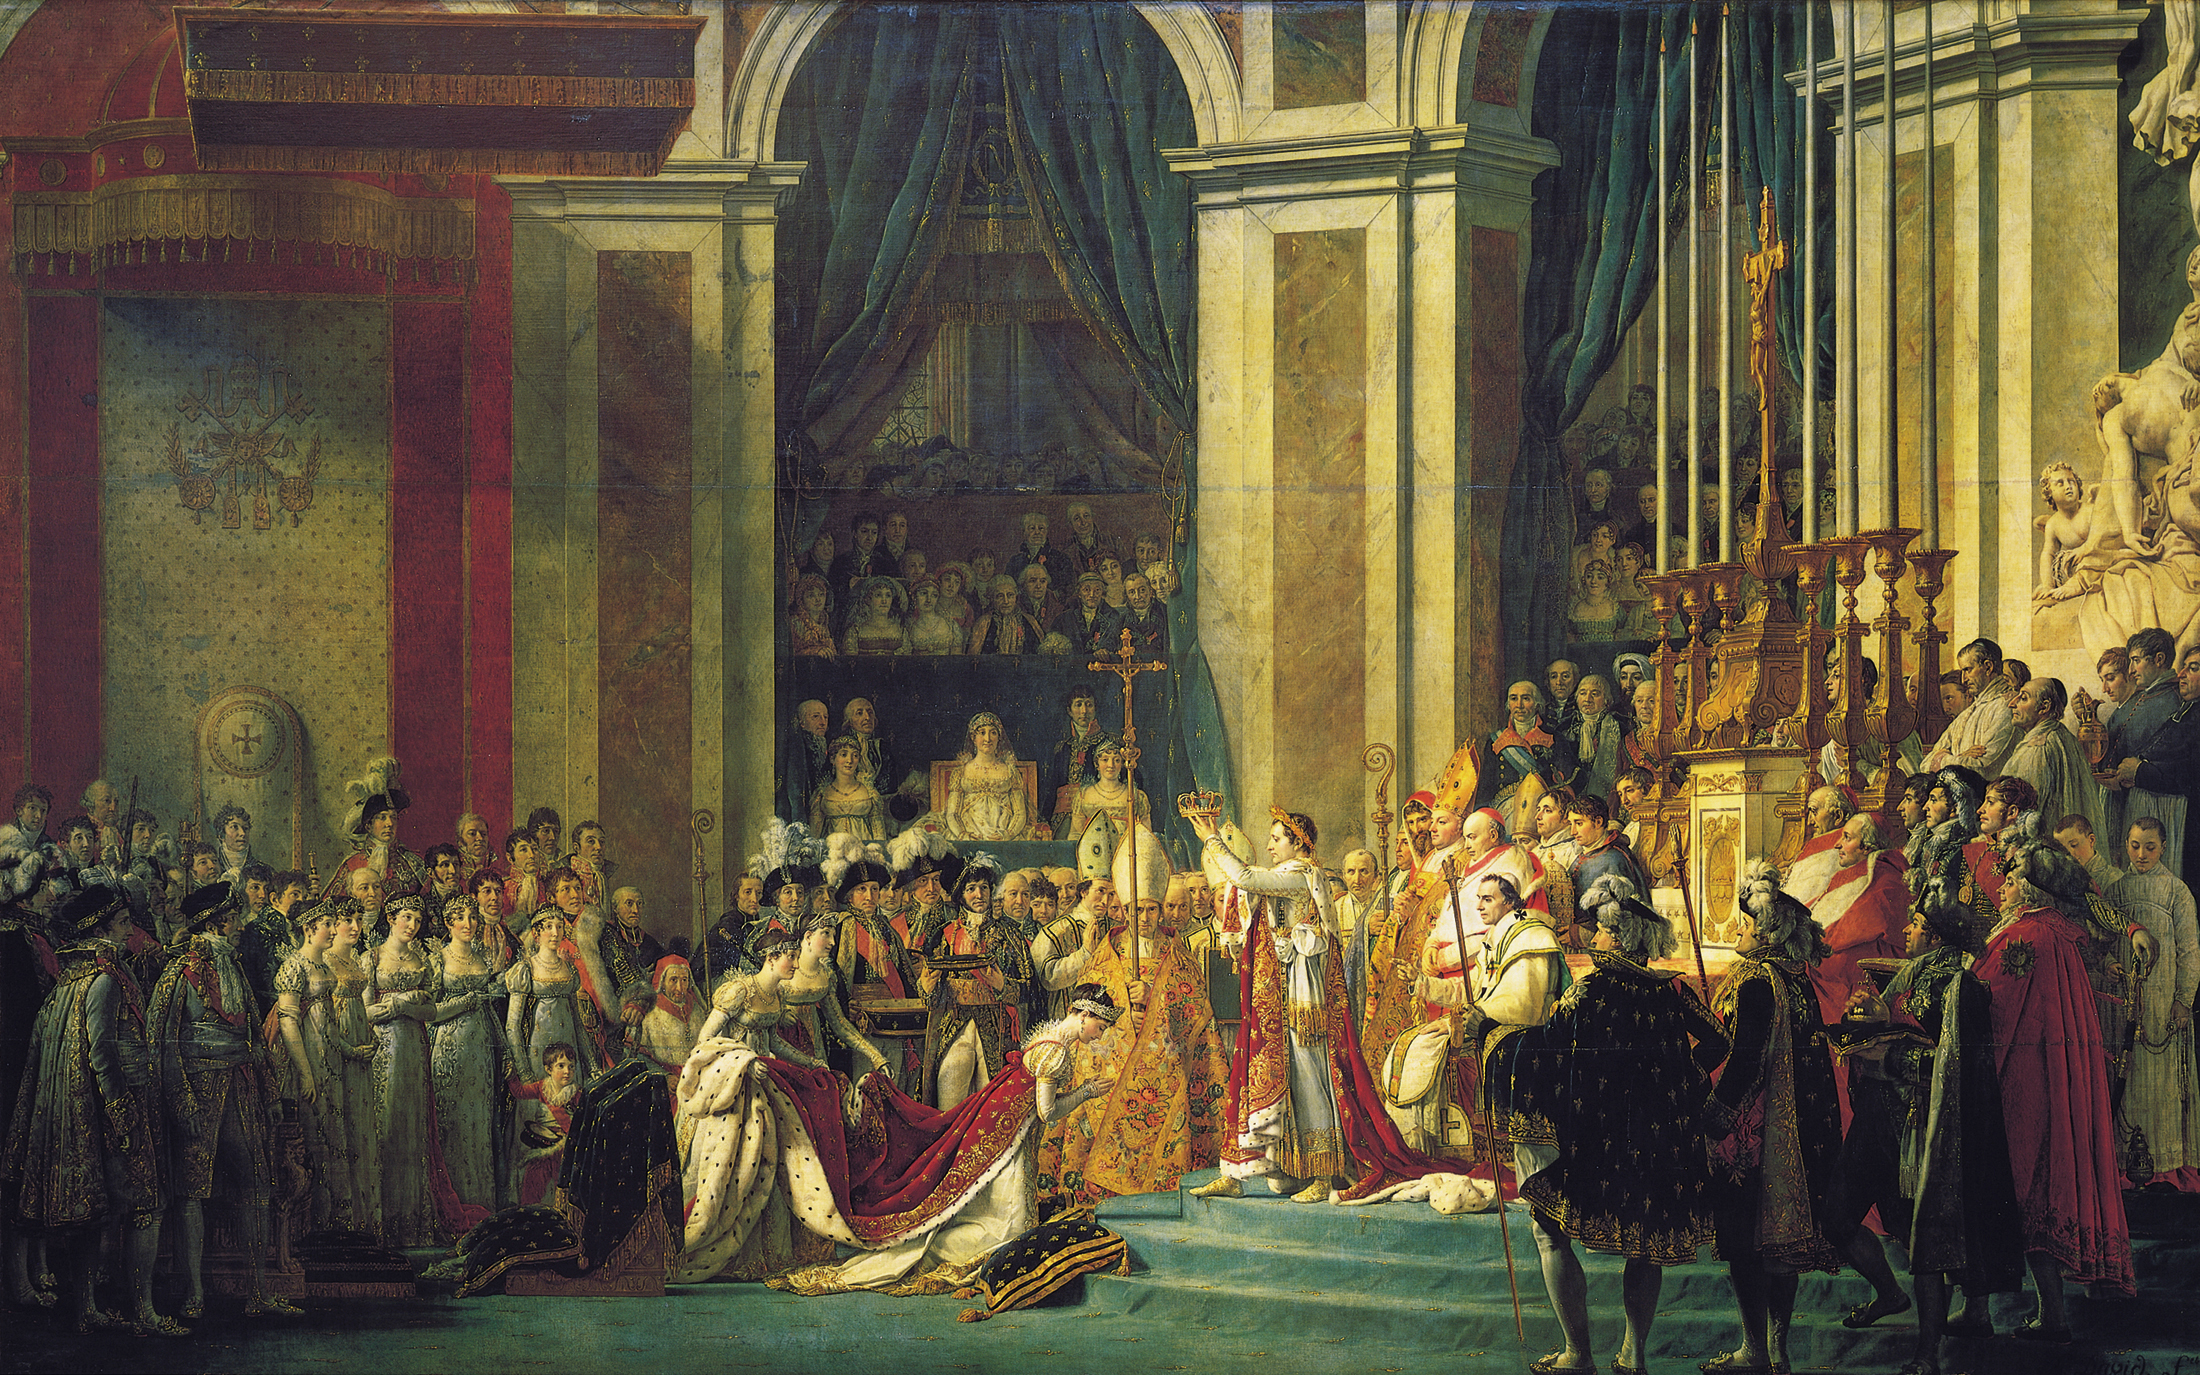 The Coronation of Napoleon (Jacques-Louis David, ca. 1807, oil on canvas)